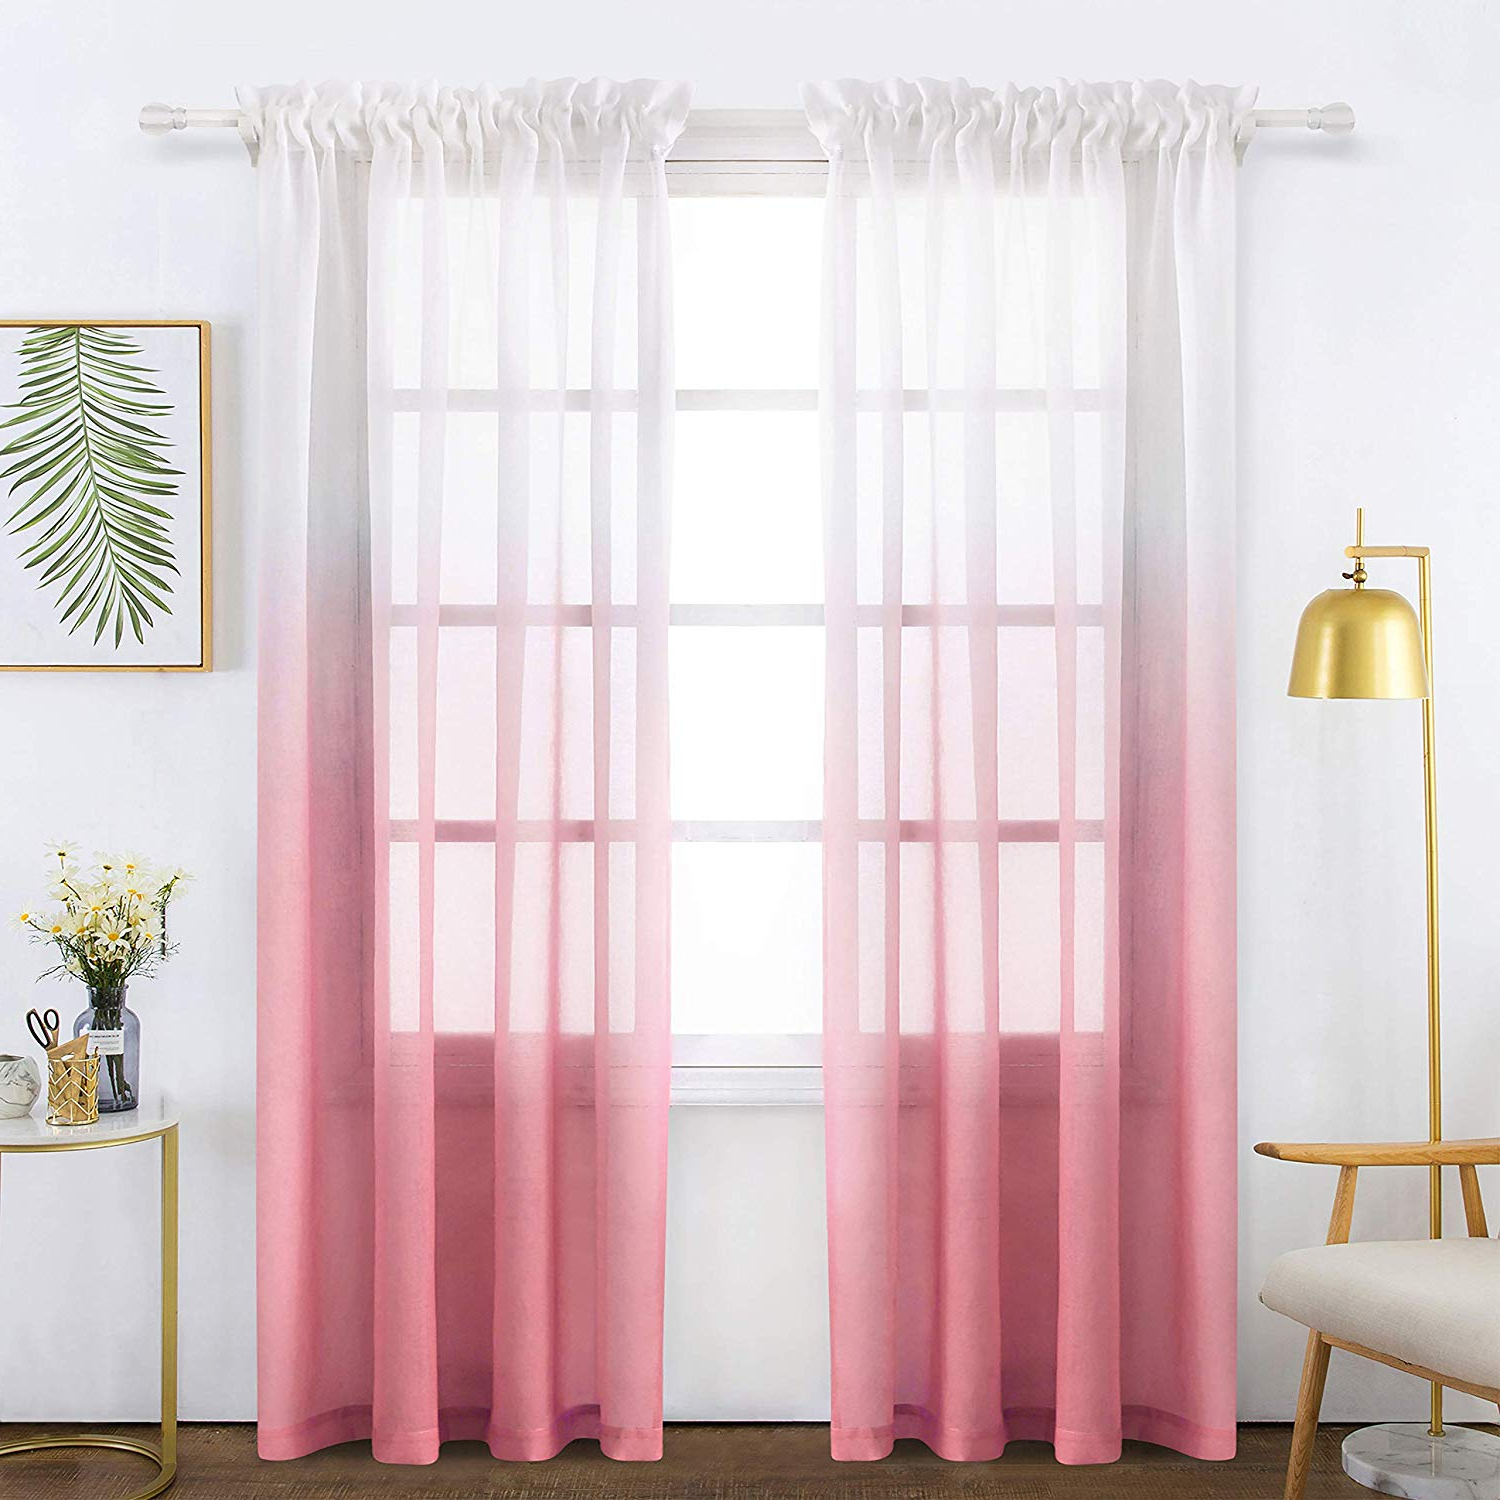 Best And Newest Ombre Faux Linen Semi Sheer Curtains In Bermino Faux Linen Pink Gradient Sheer Curtains Voile Rod Pocket Ombre Semi Sheer Curtains For Bedroom Living Room Set Of 2 Curtain Panels 54 X (View 12 of 20)